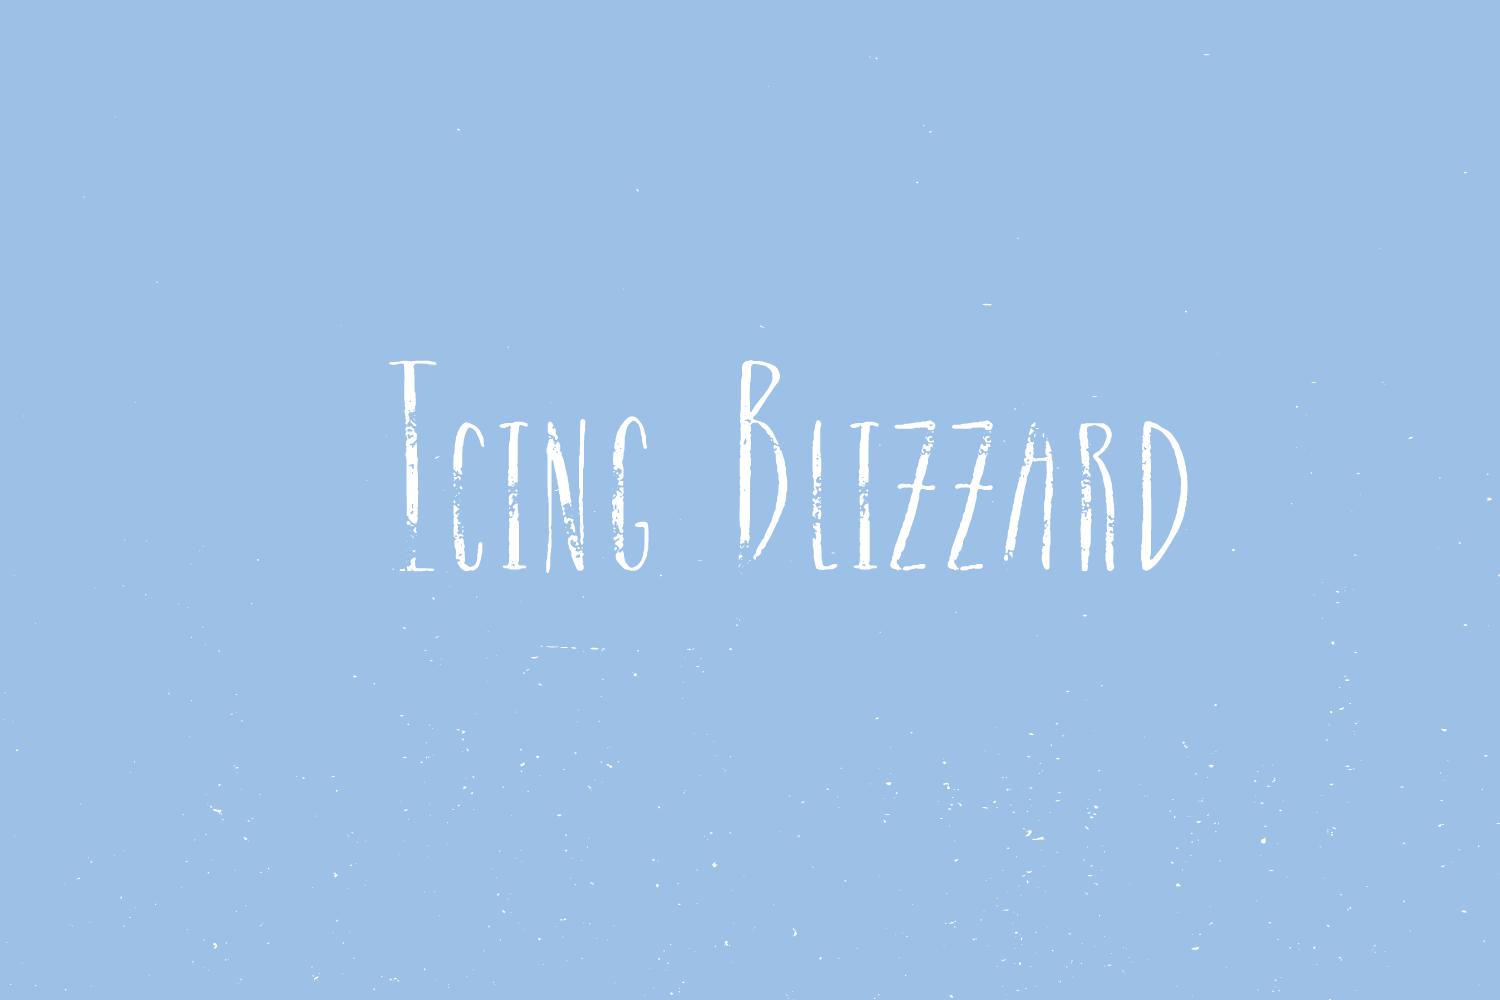 Winter Mix Blizzard example image 3